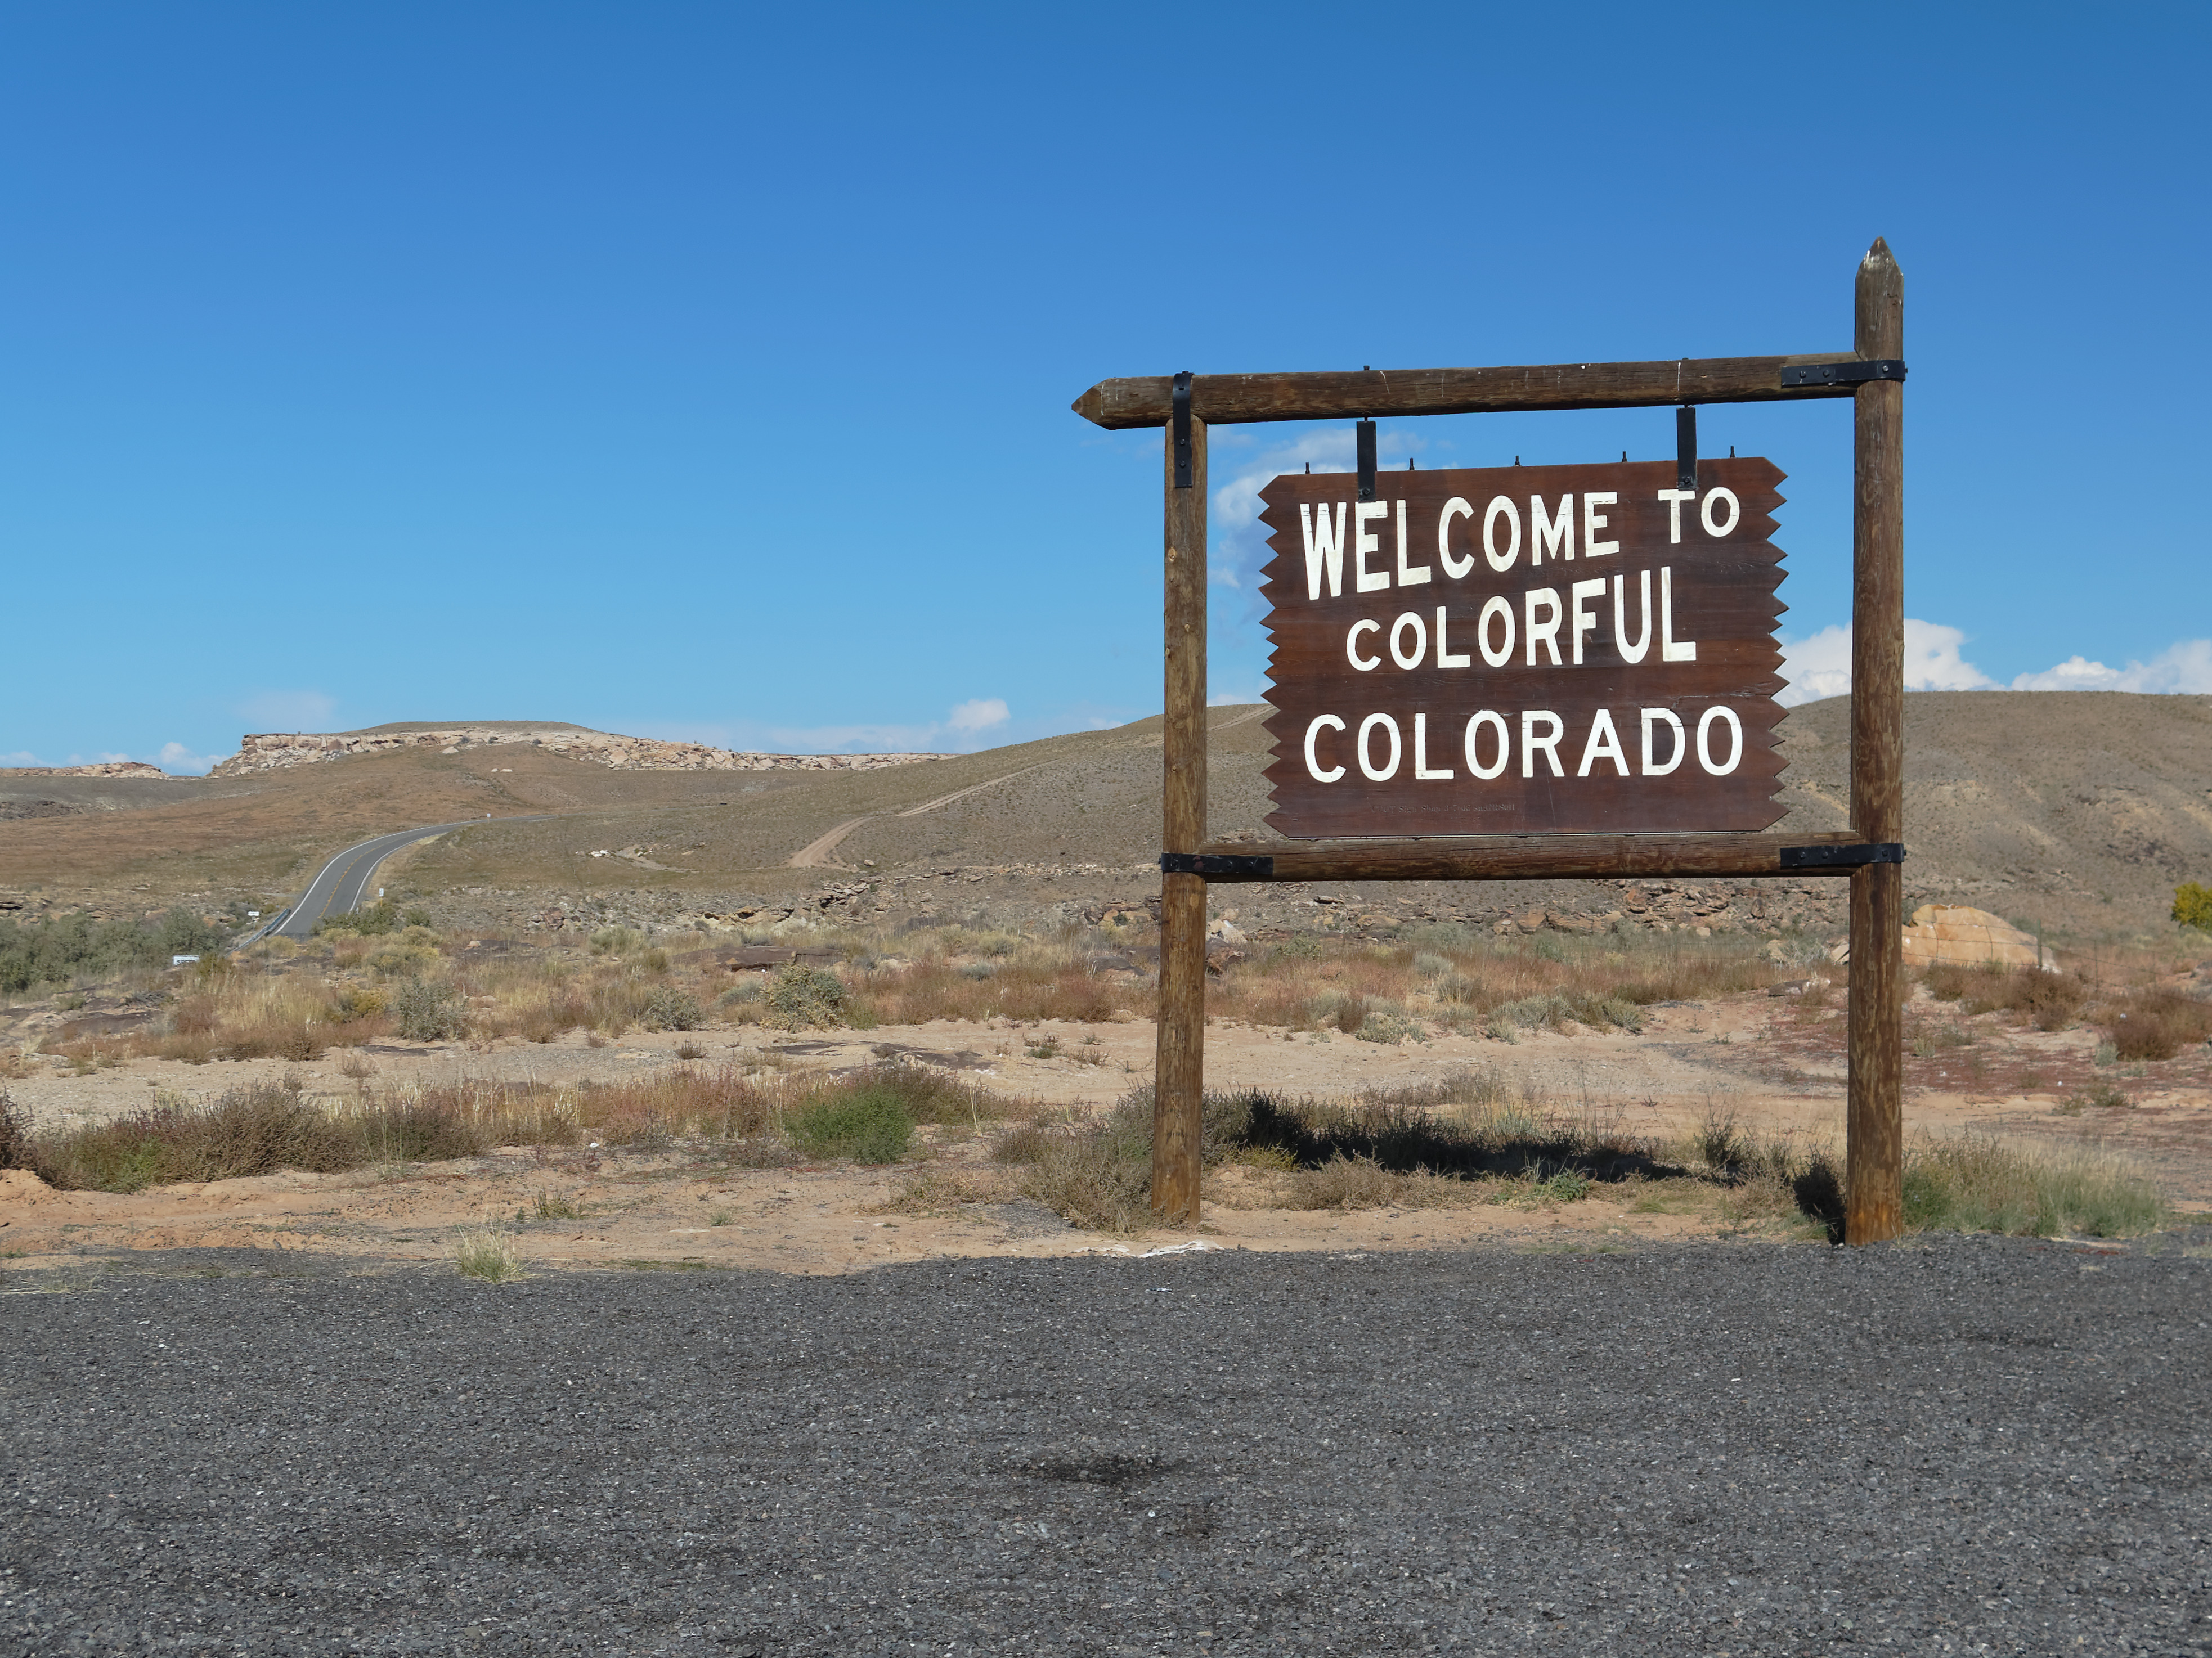 """<p>A sign welcomes travelers to Colorado near Montezuma in the southwestern part of the state. (Photo: Courtesy Flickr user <a href=""""https://www.flickr.com/photos/zruda/12198484075/"""">Zruda</a>/Creative Commons)</p>"""